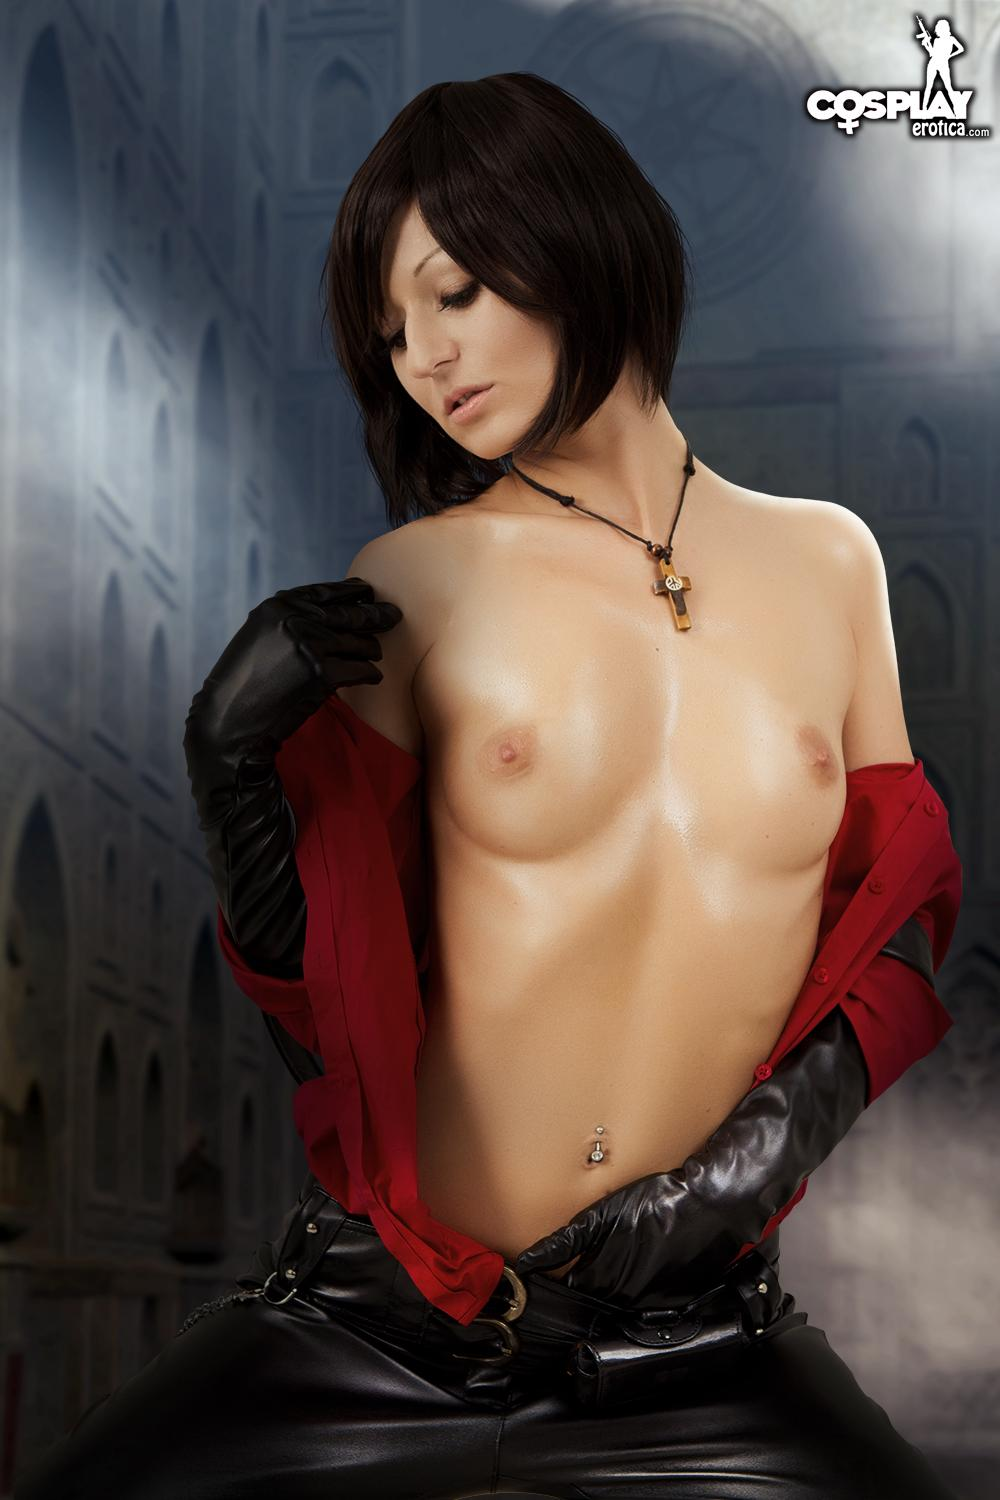 Ada wong anime nude skins hentai movie